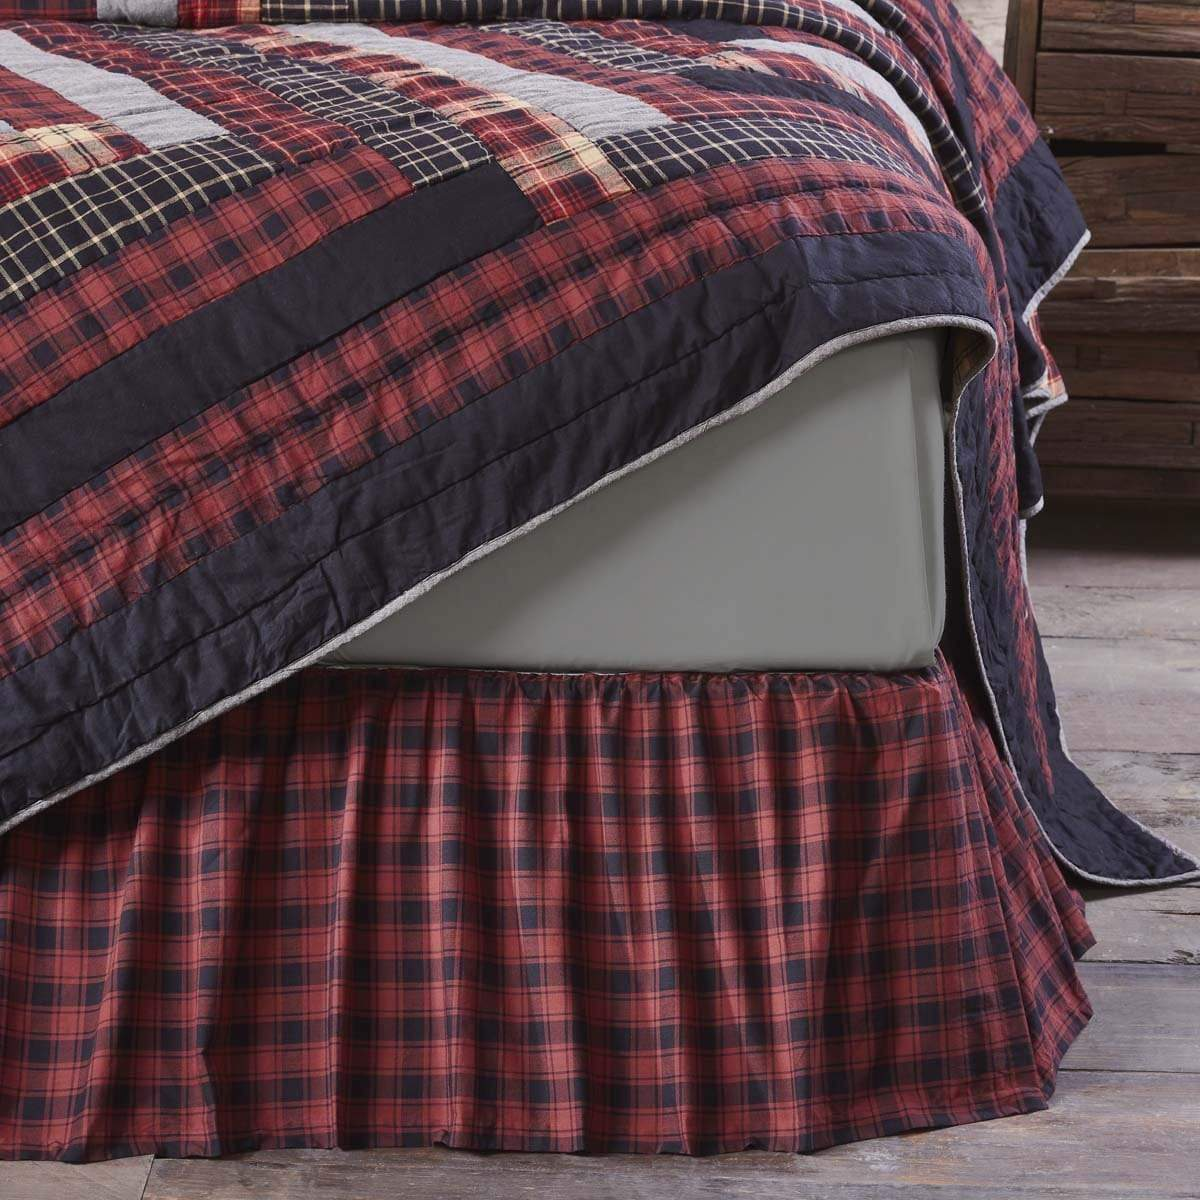 Cumberland Twin Bed Skirt 39x76x16 The Village Country Store